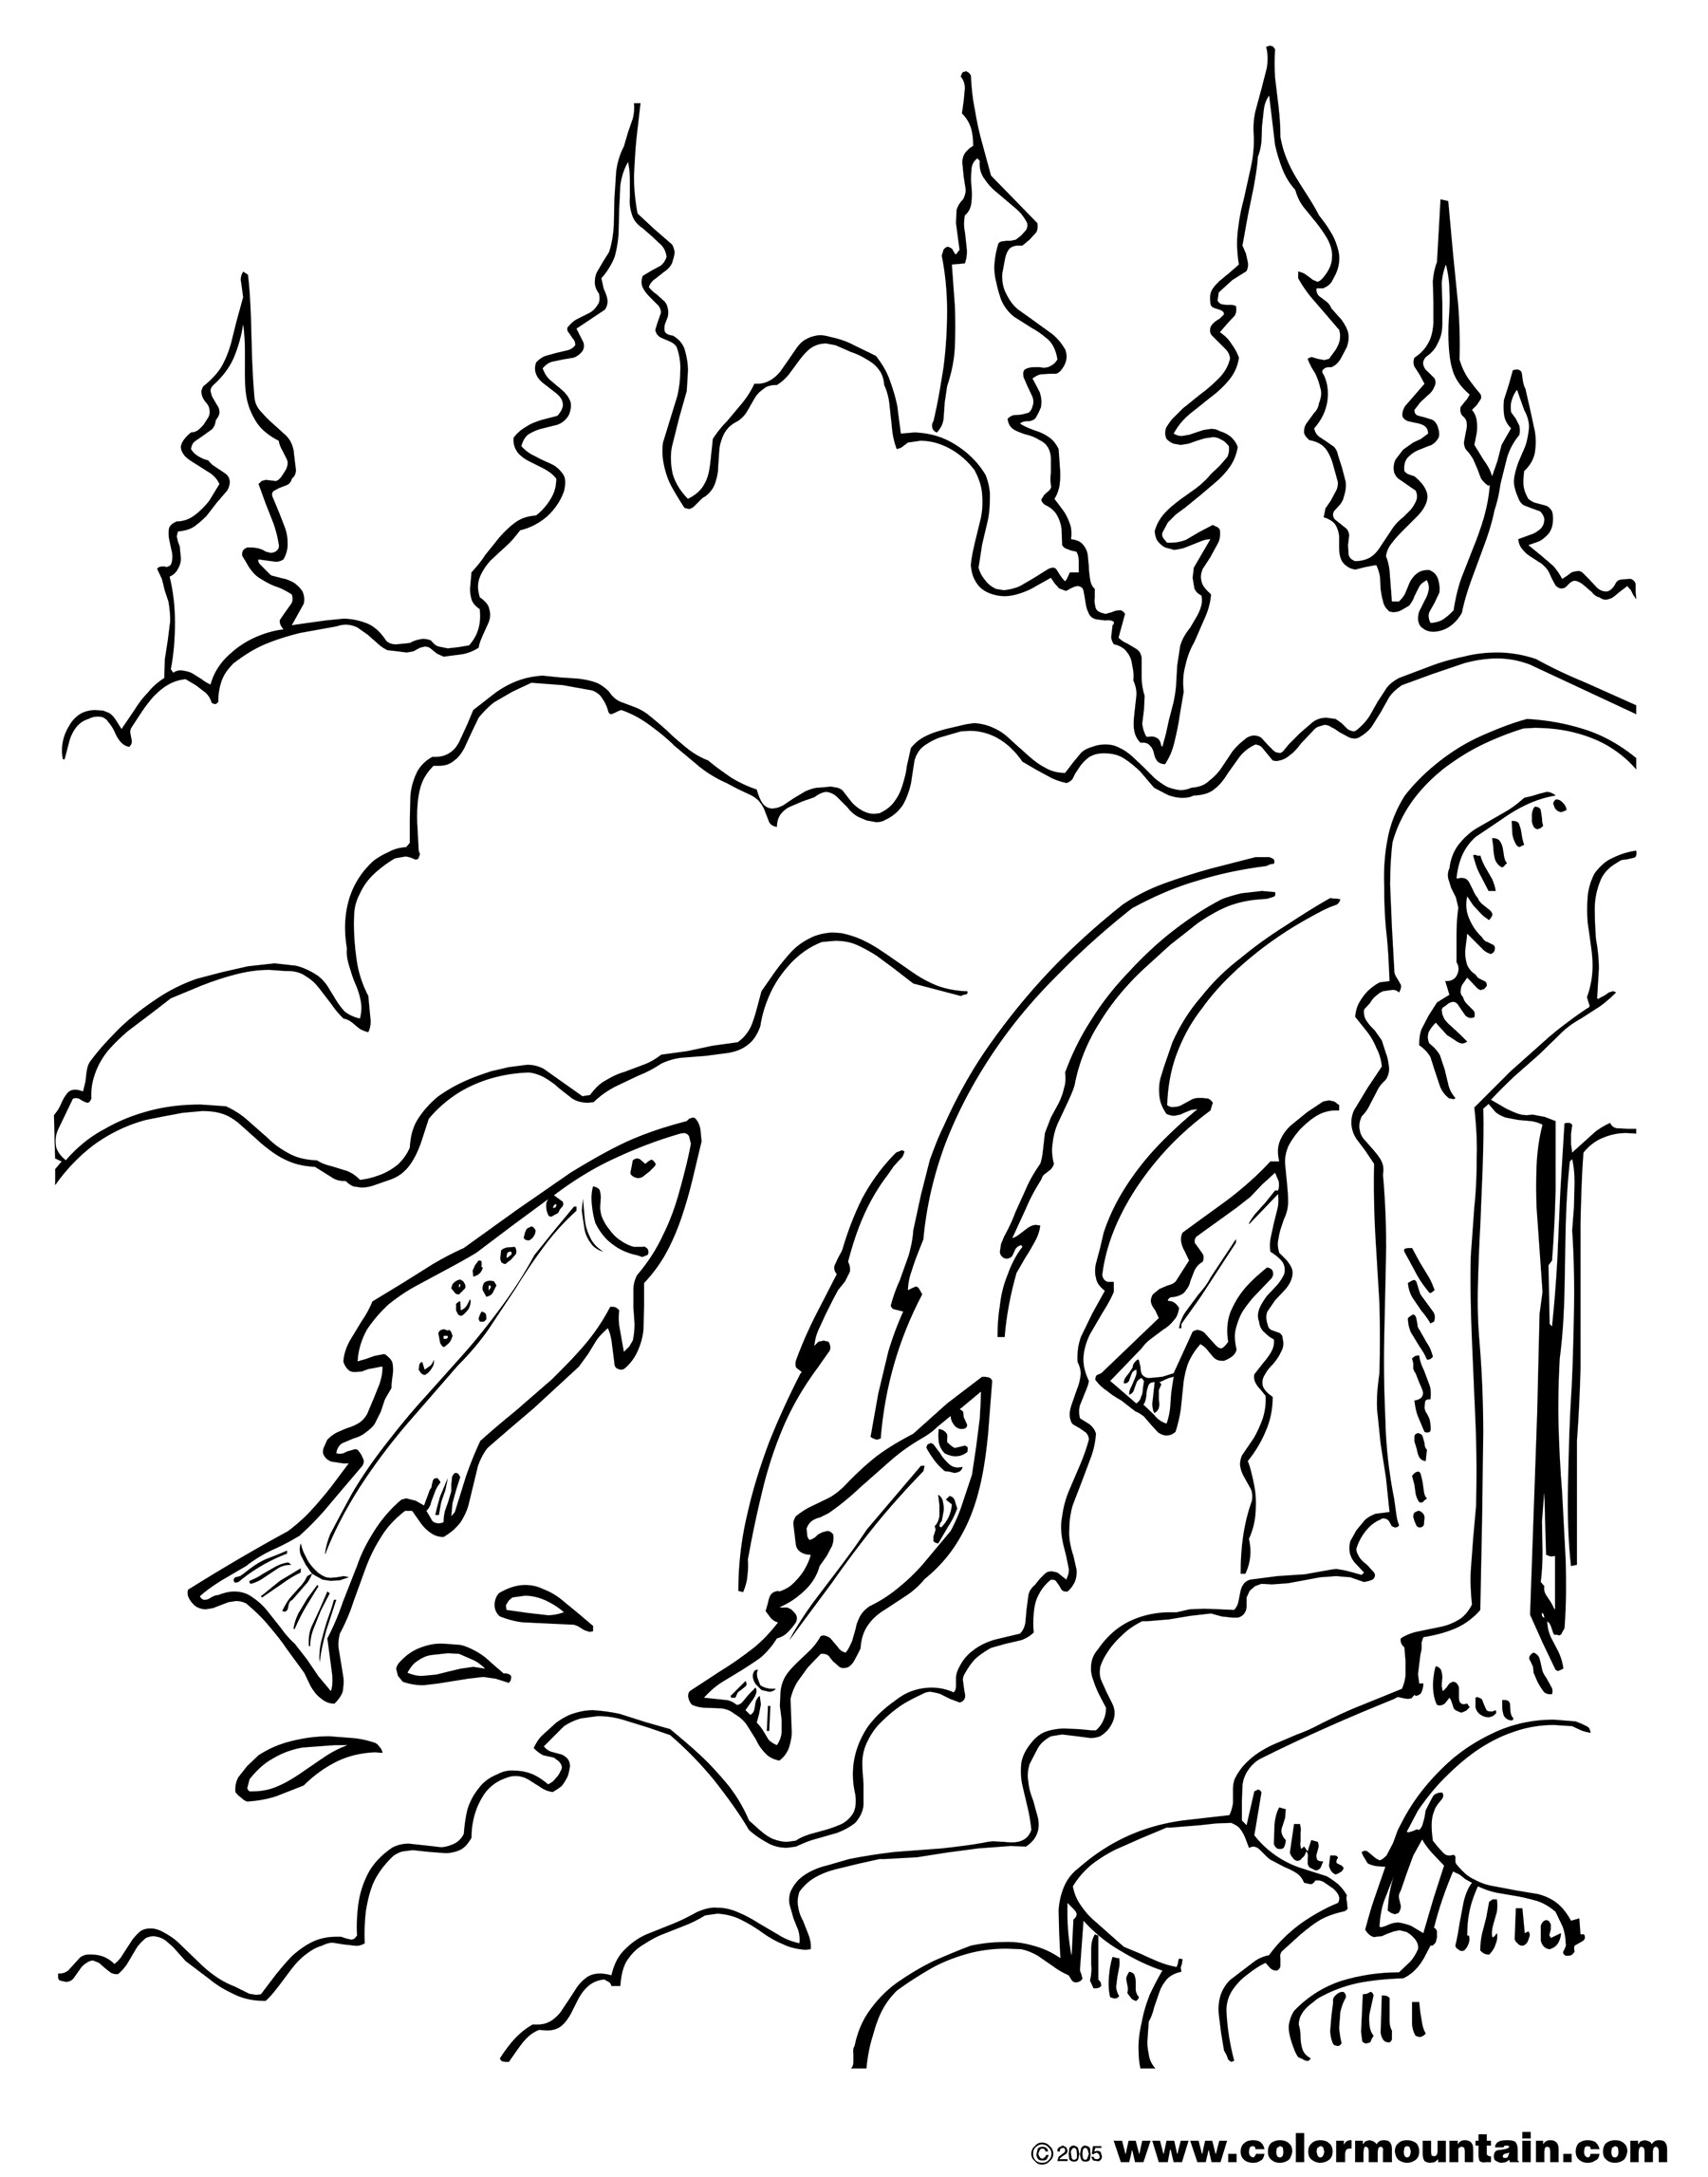 1800x2294 Modest Chinook Salmon Coloring Page Drawing Image At Getdrawings